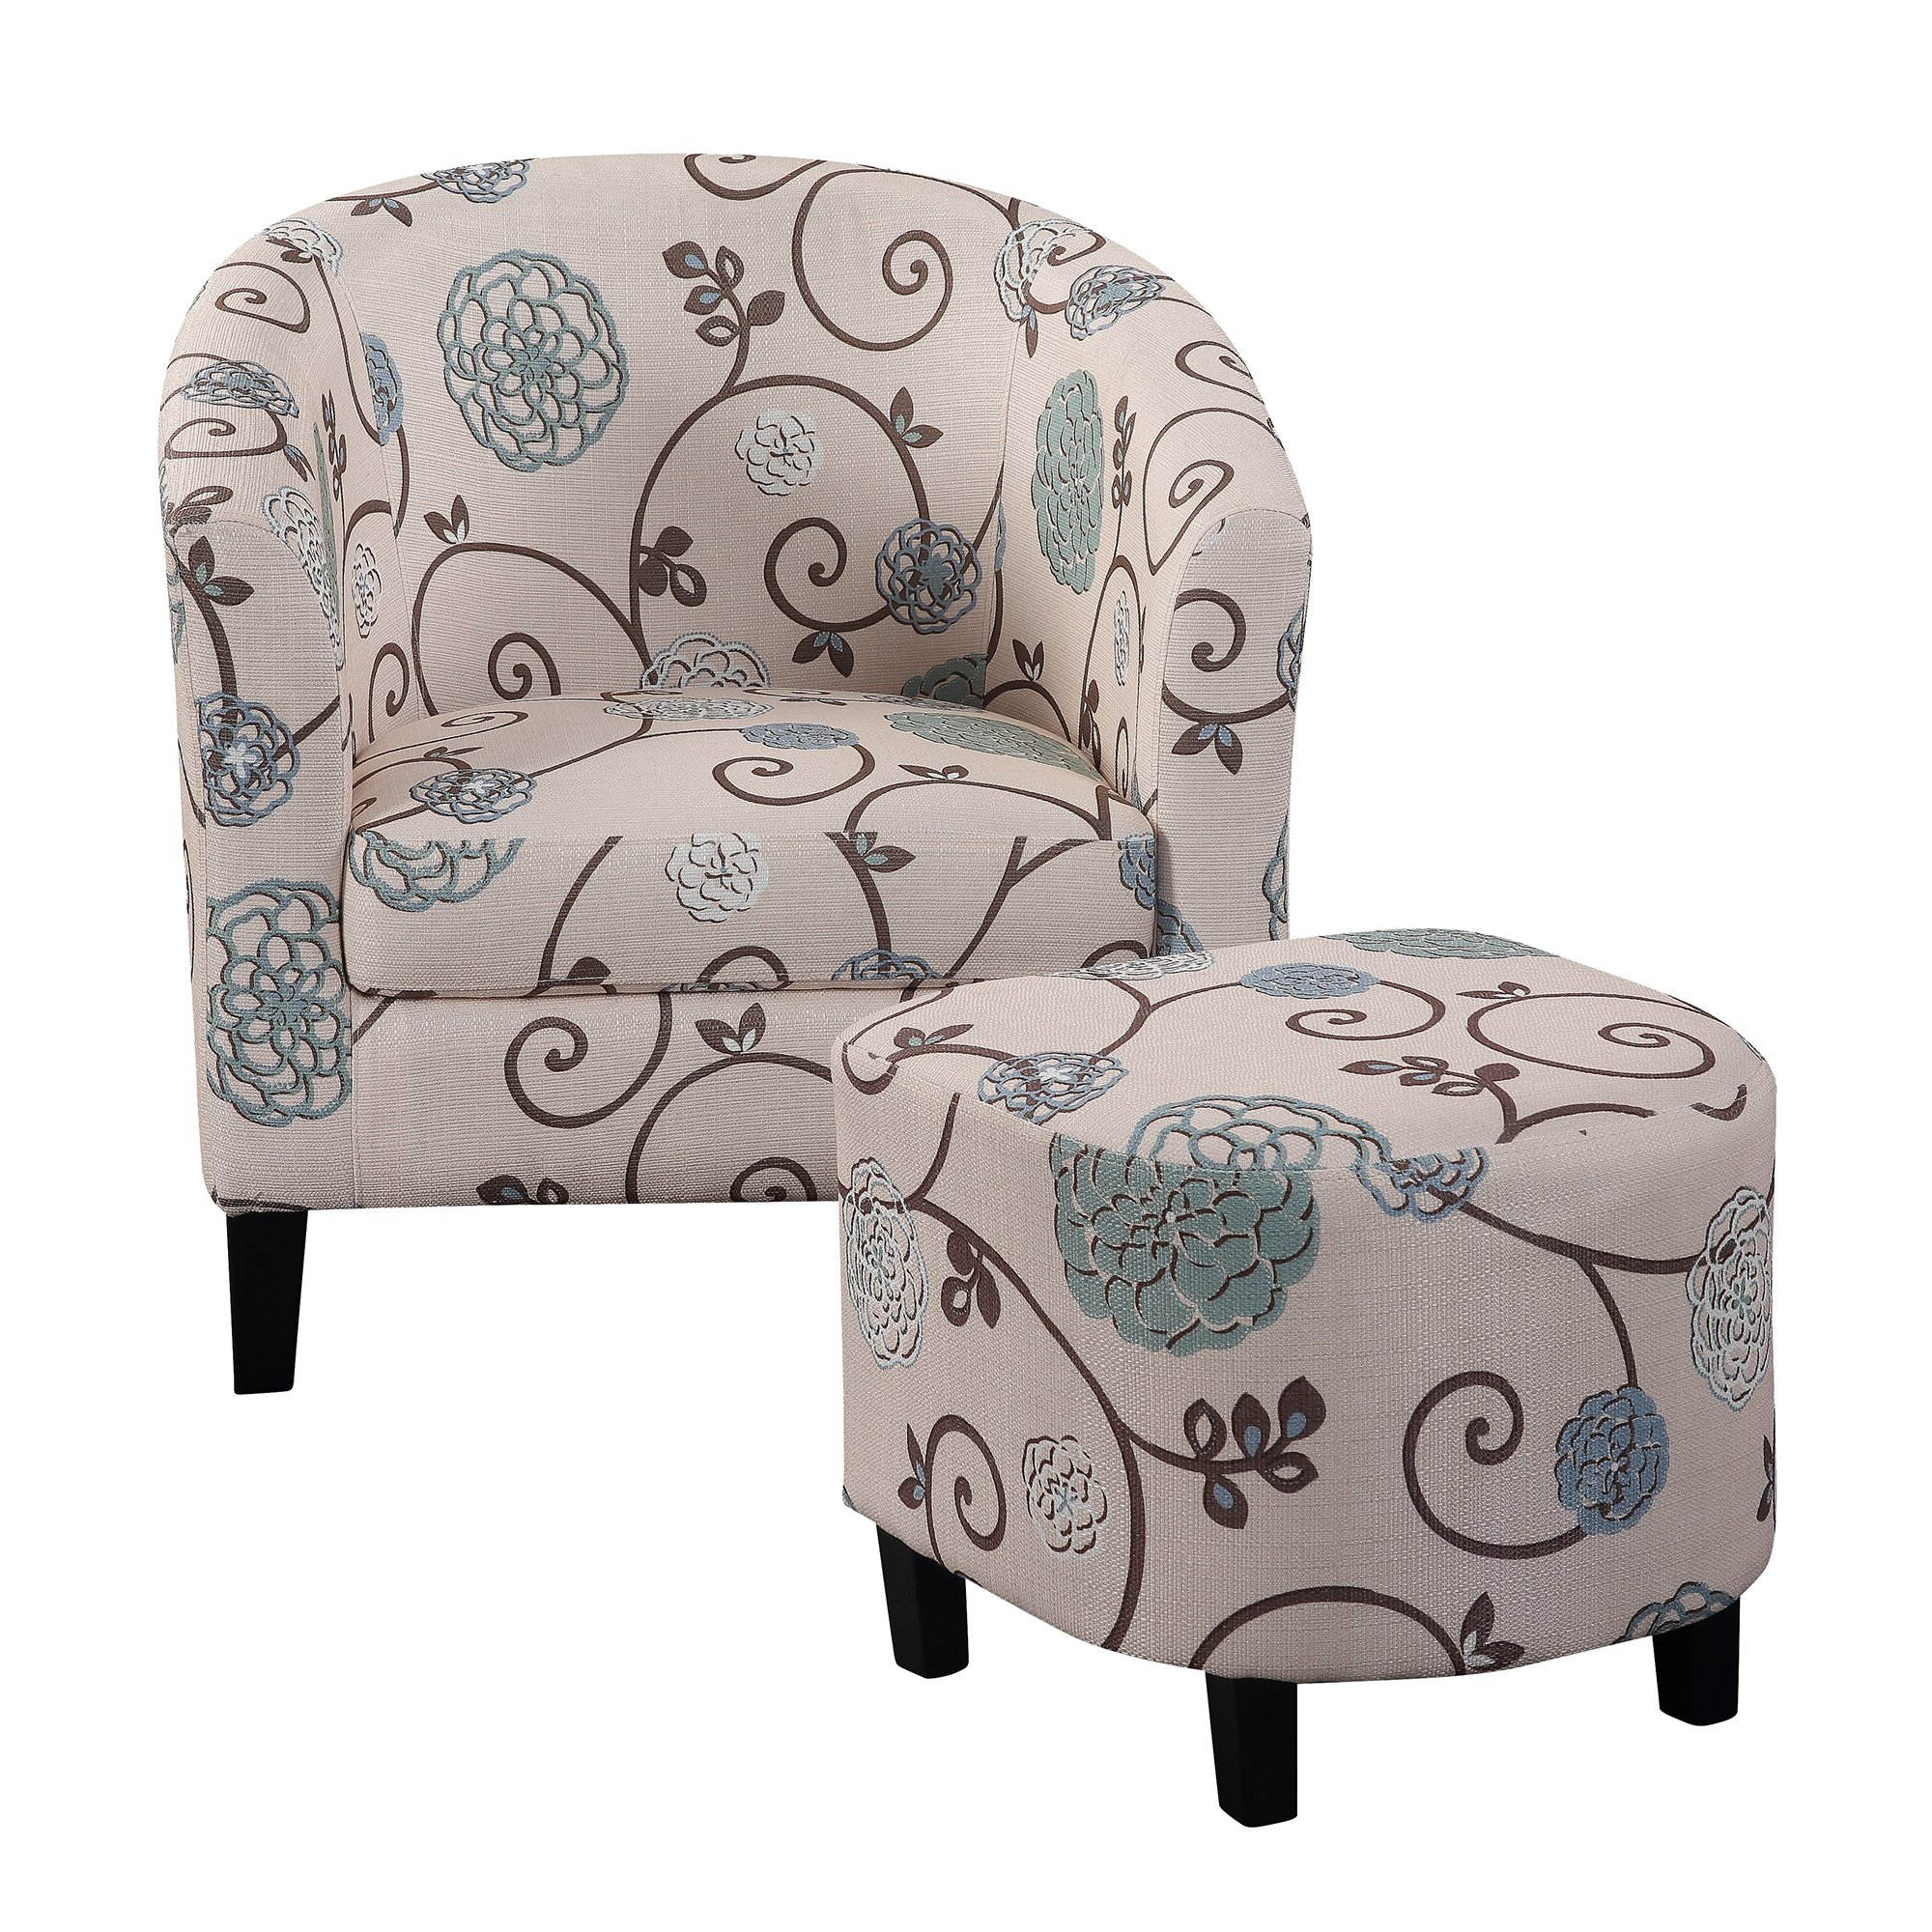 Jazouli Linen Barrel Chairs And Ottoman For Well Liked Lei Barrel Chair And Ottoman (View 15 of 20)